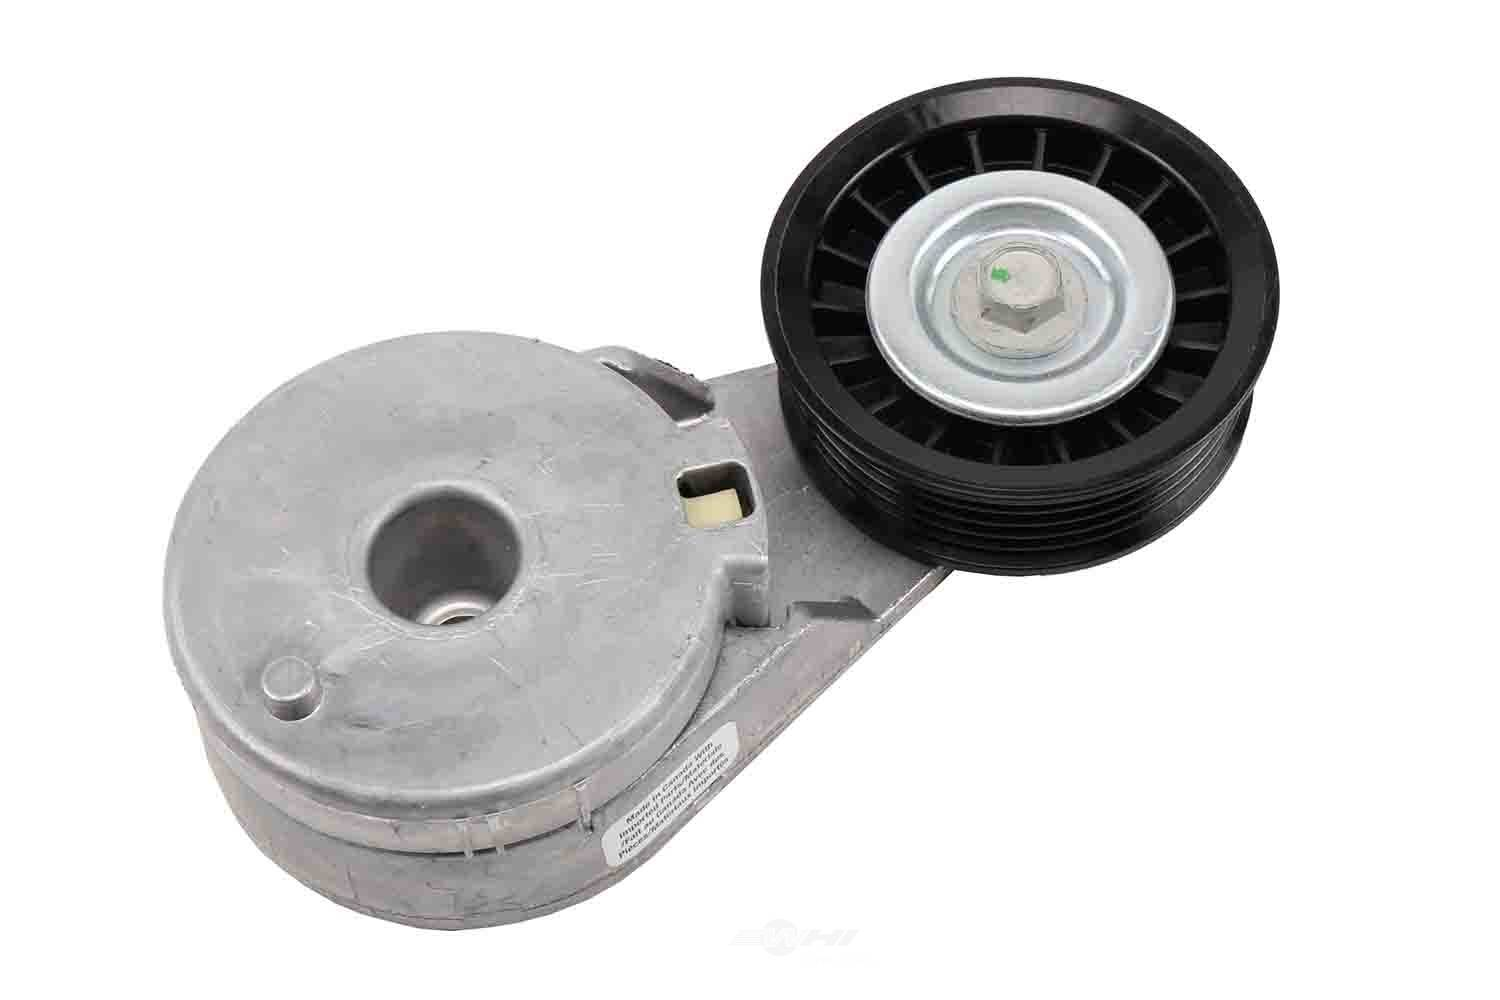 ACDELCO GM ORIGINAL EQUIPMENT - Accessory Drive Belt Tensioner Assembly - DCB 12563083